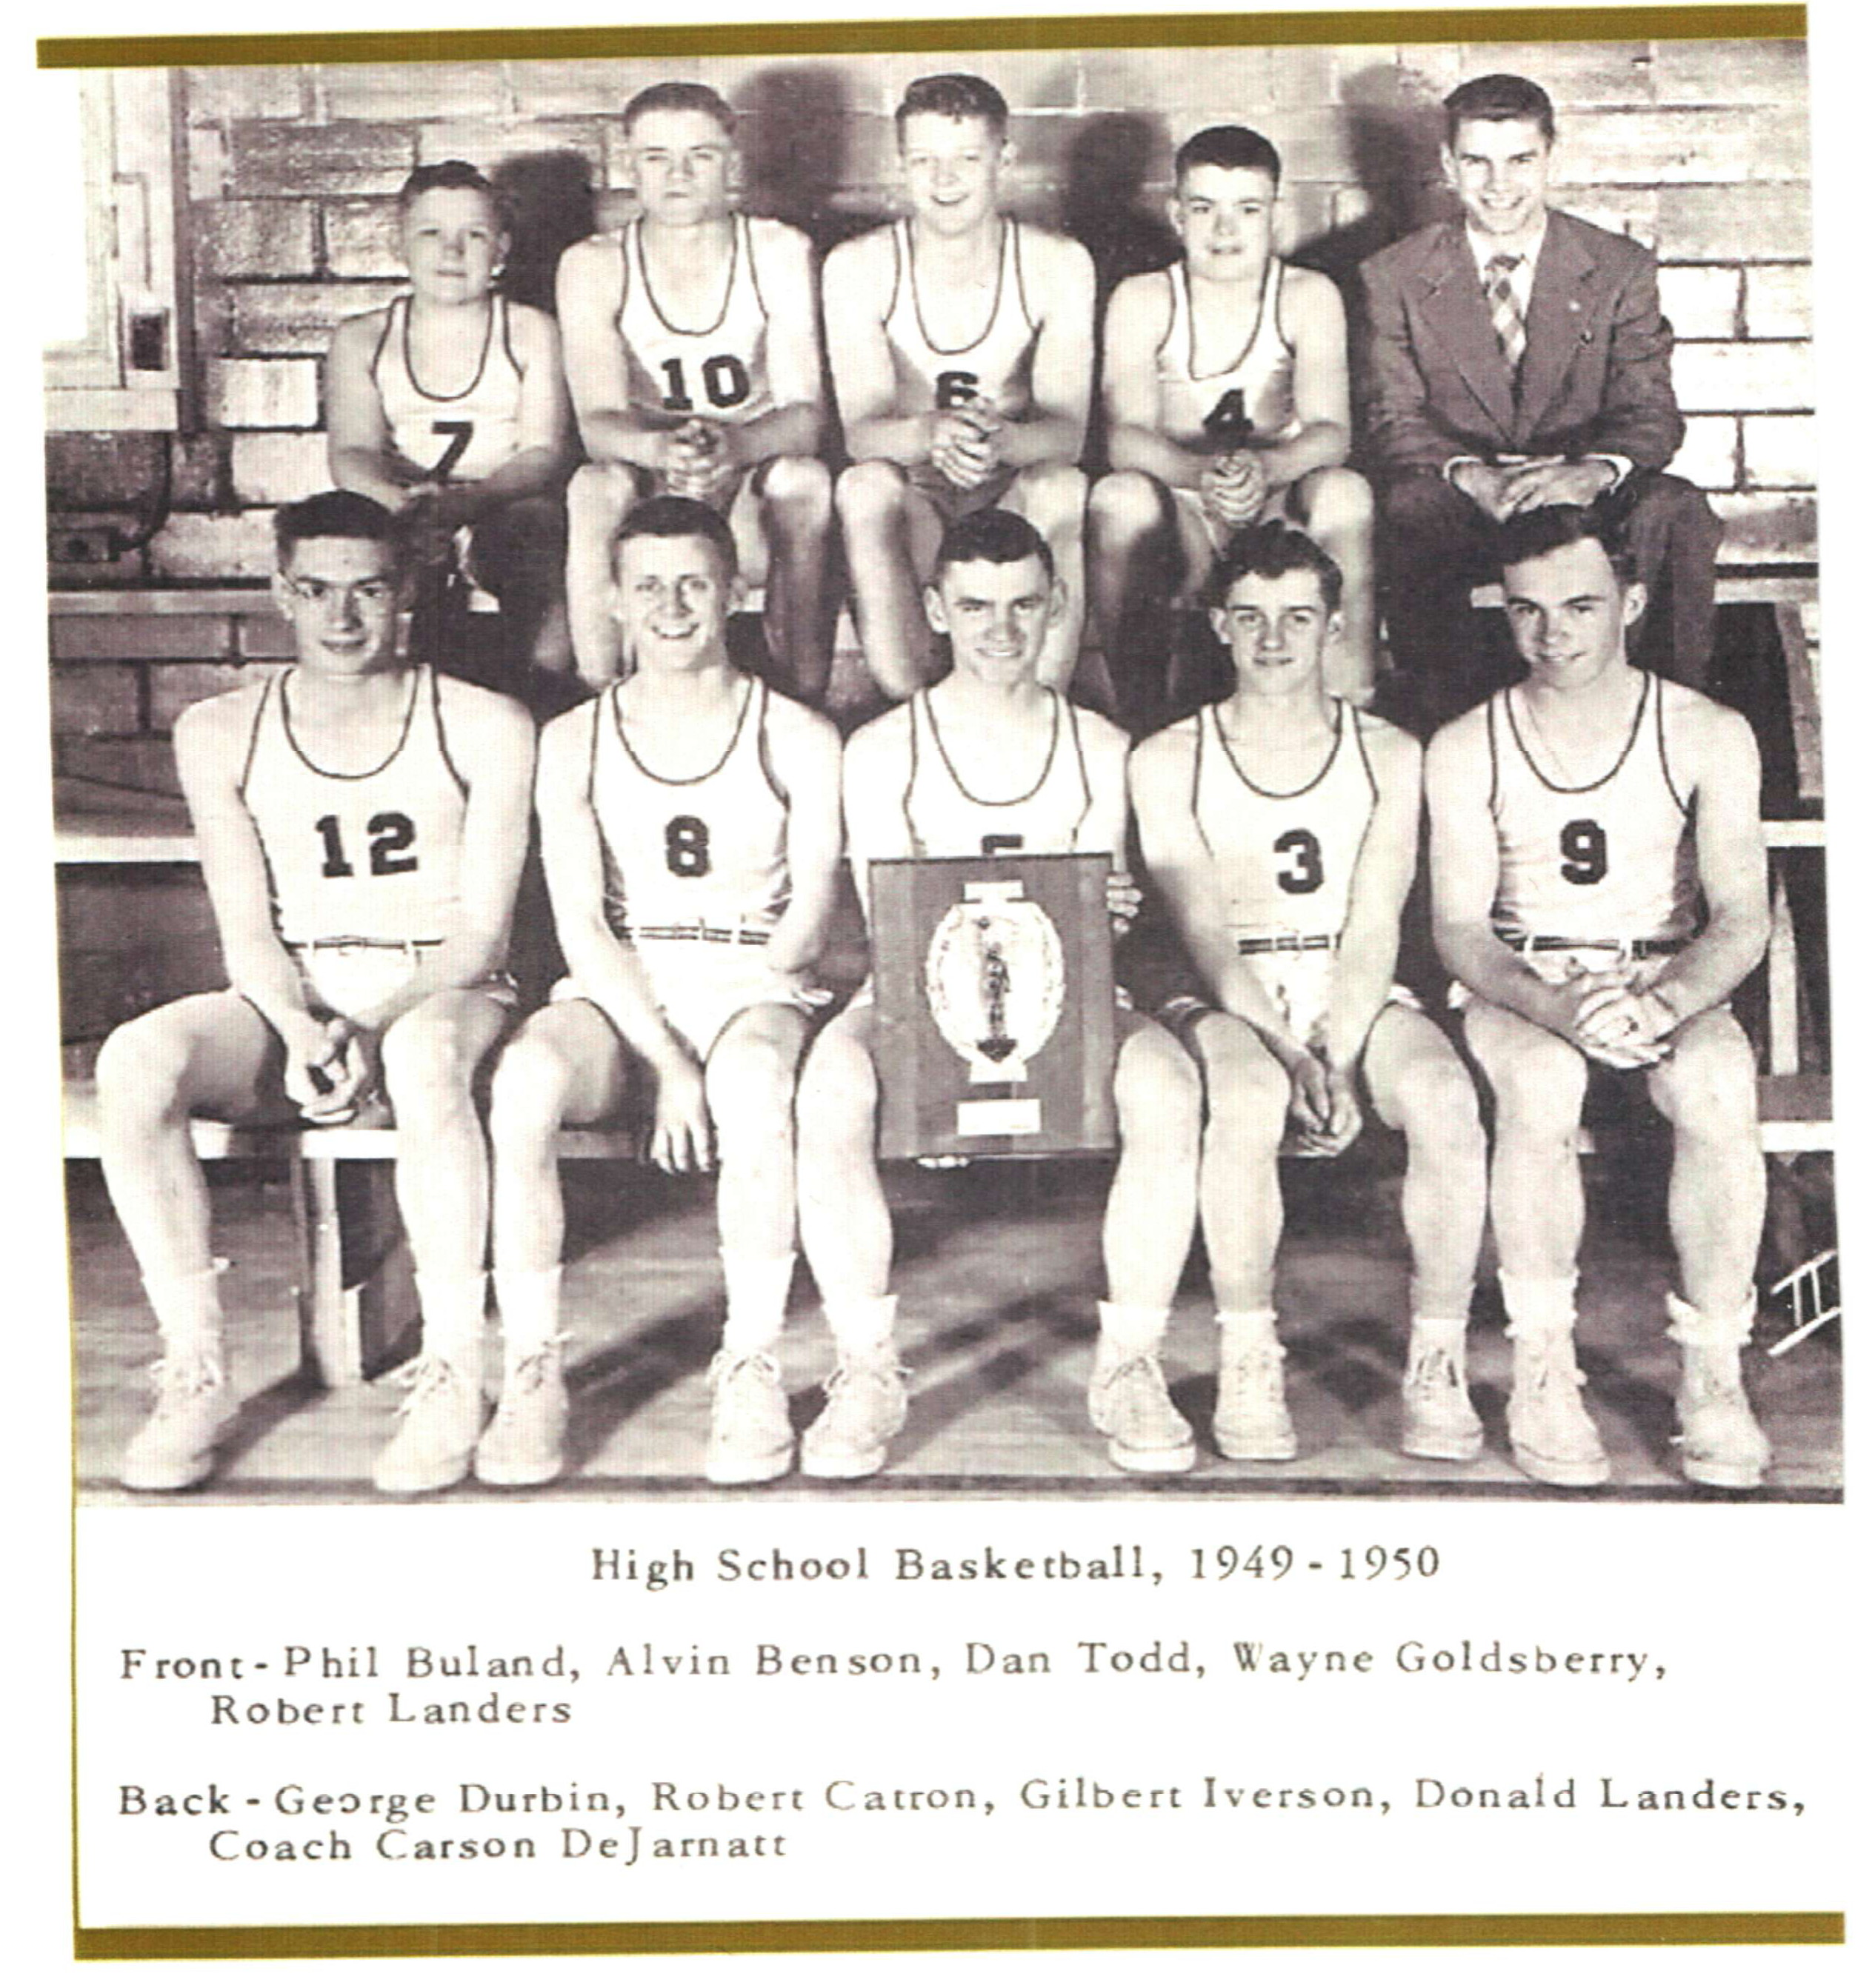 rollo1950districtchamps.jpg